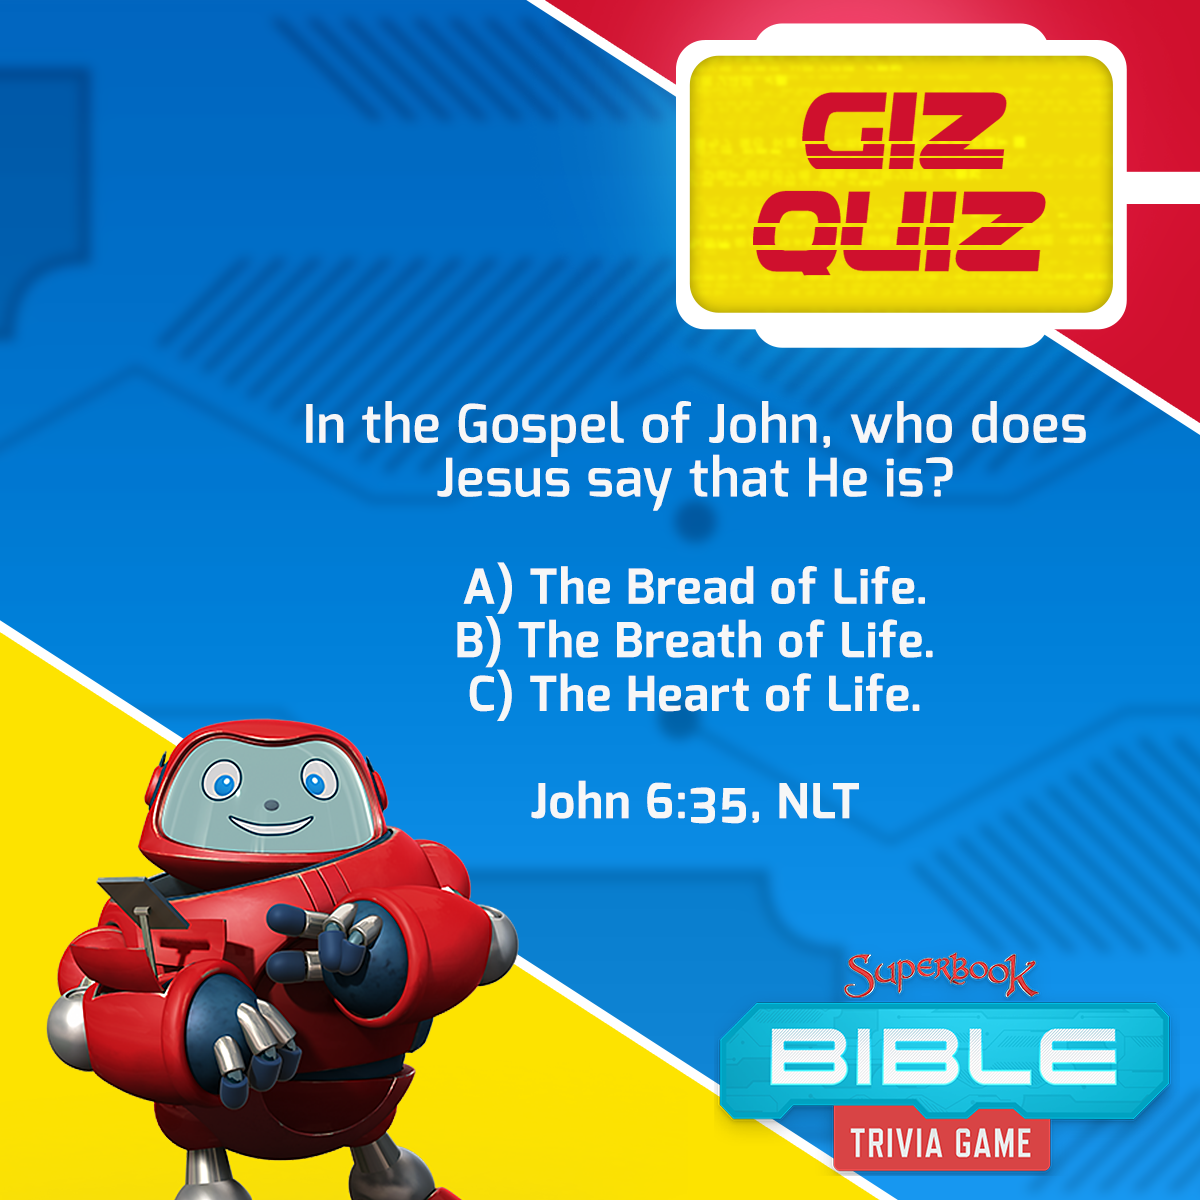 Pin by Superbook on Gizmo Games Superbook, Bible trivia